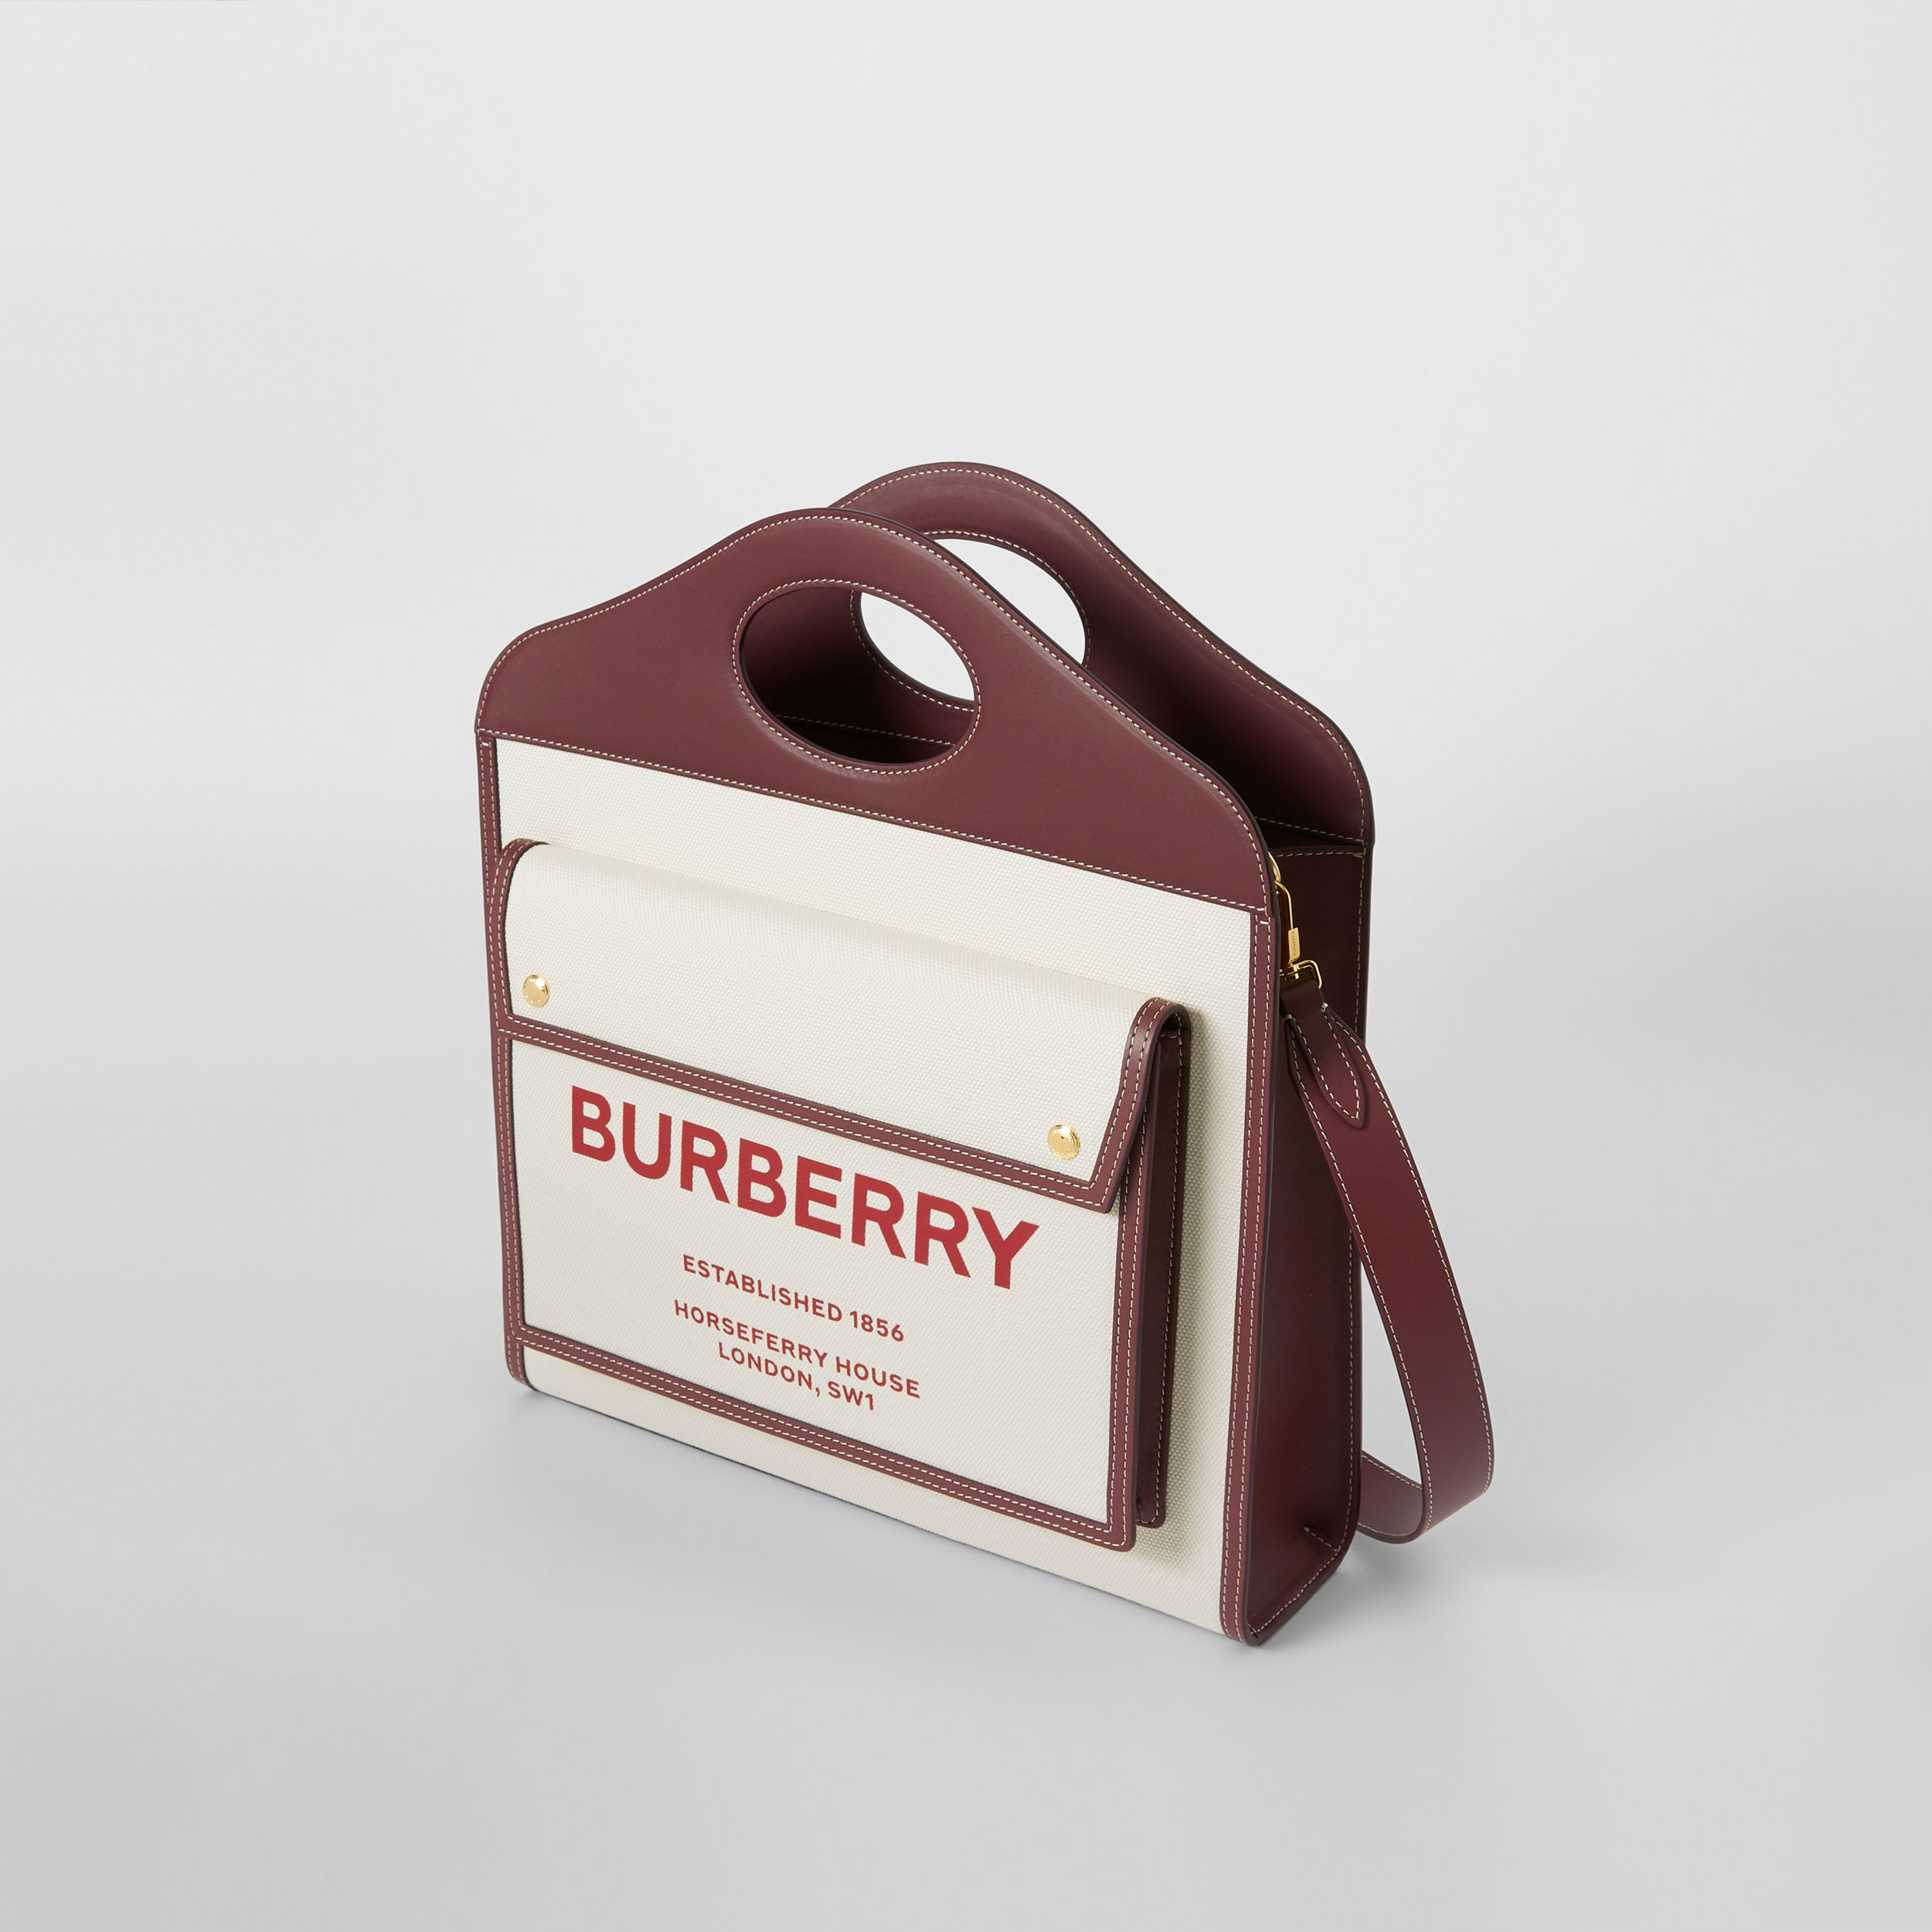 Medium Two-tone Canvas and Leather Pocket Bag in Natural/garnet - Women | Burberry - 4